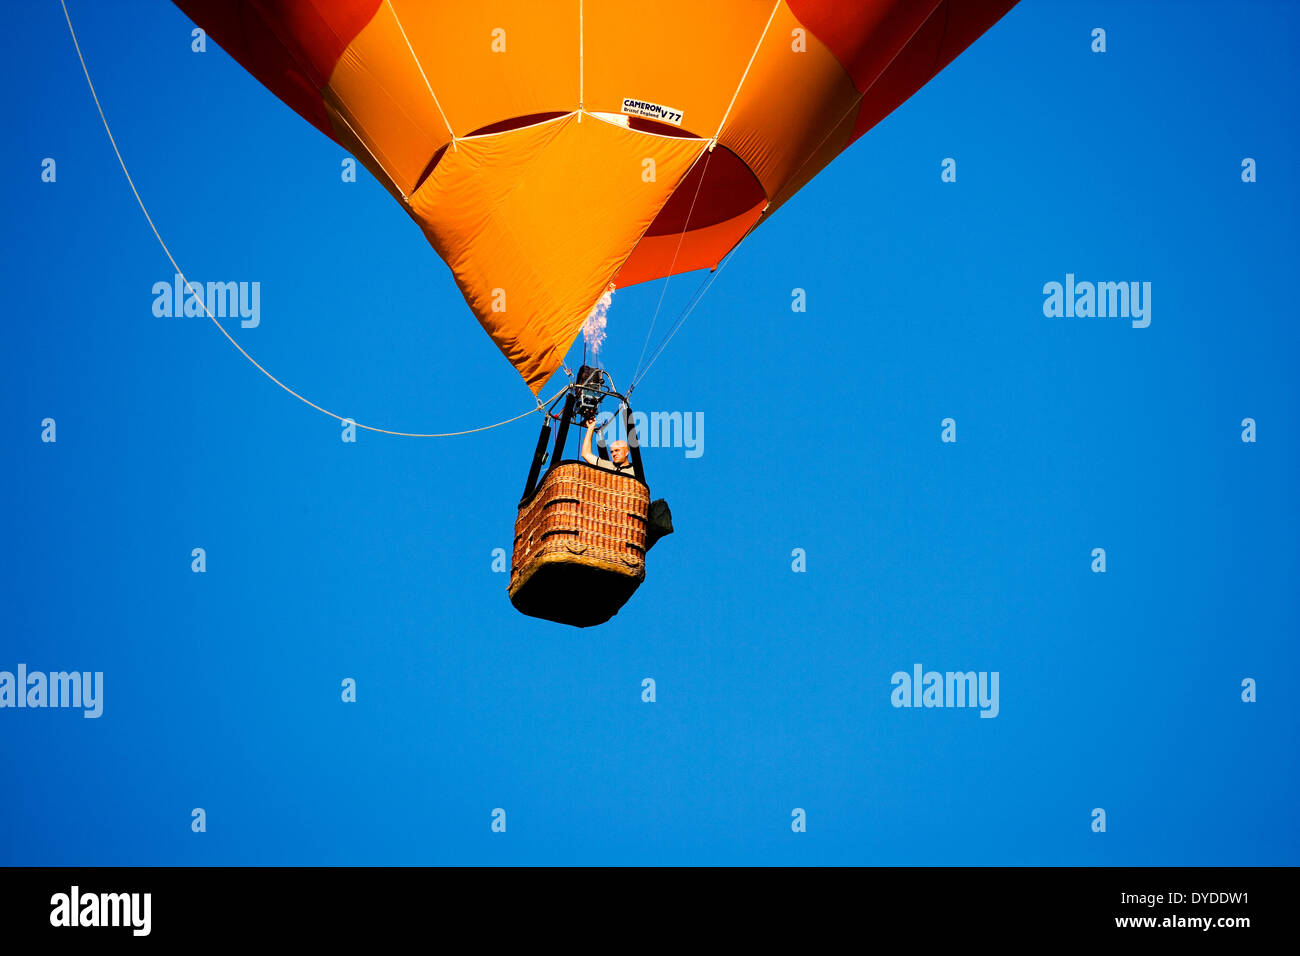 Ballon Bilder Hot Air Balloon Stockfotos And Hot Air Balloon Bilder Alamy